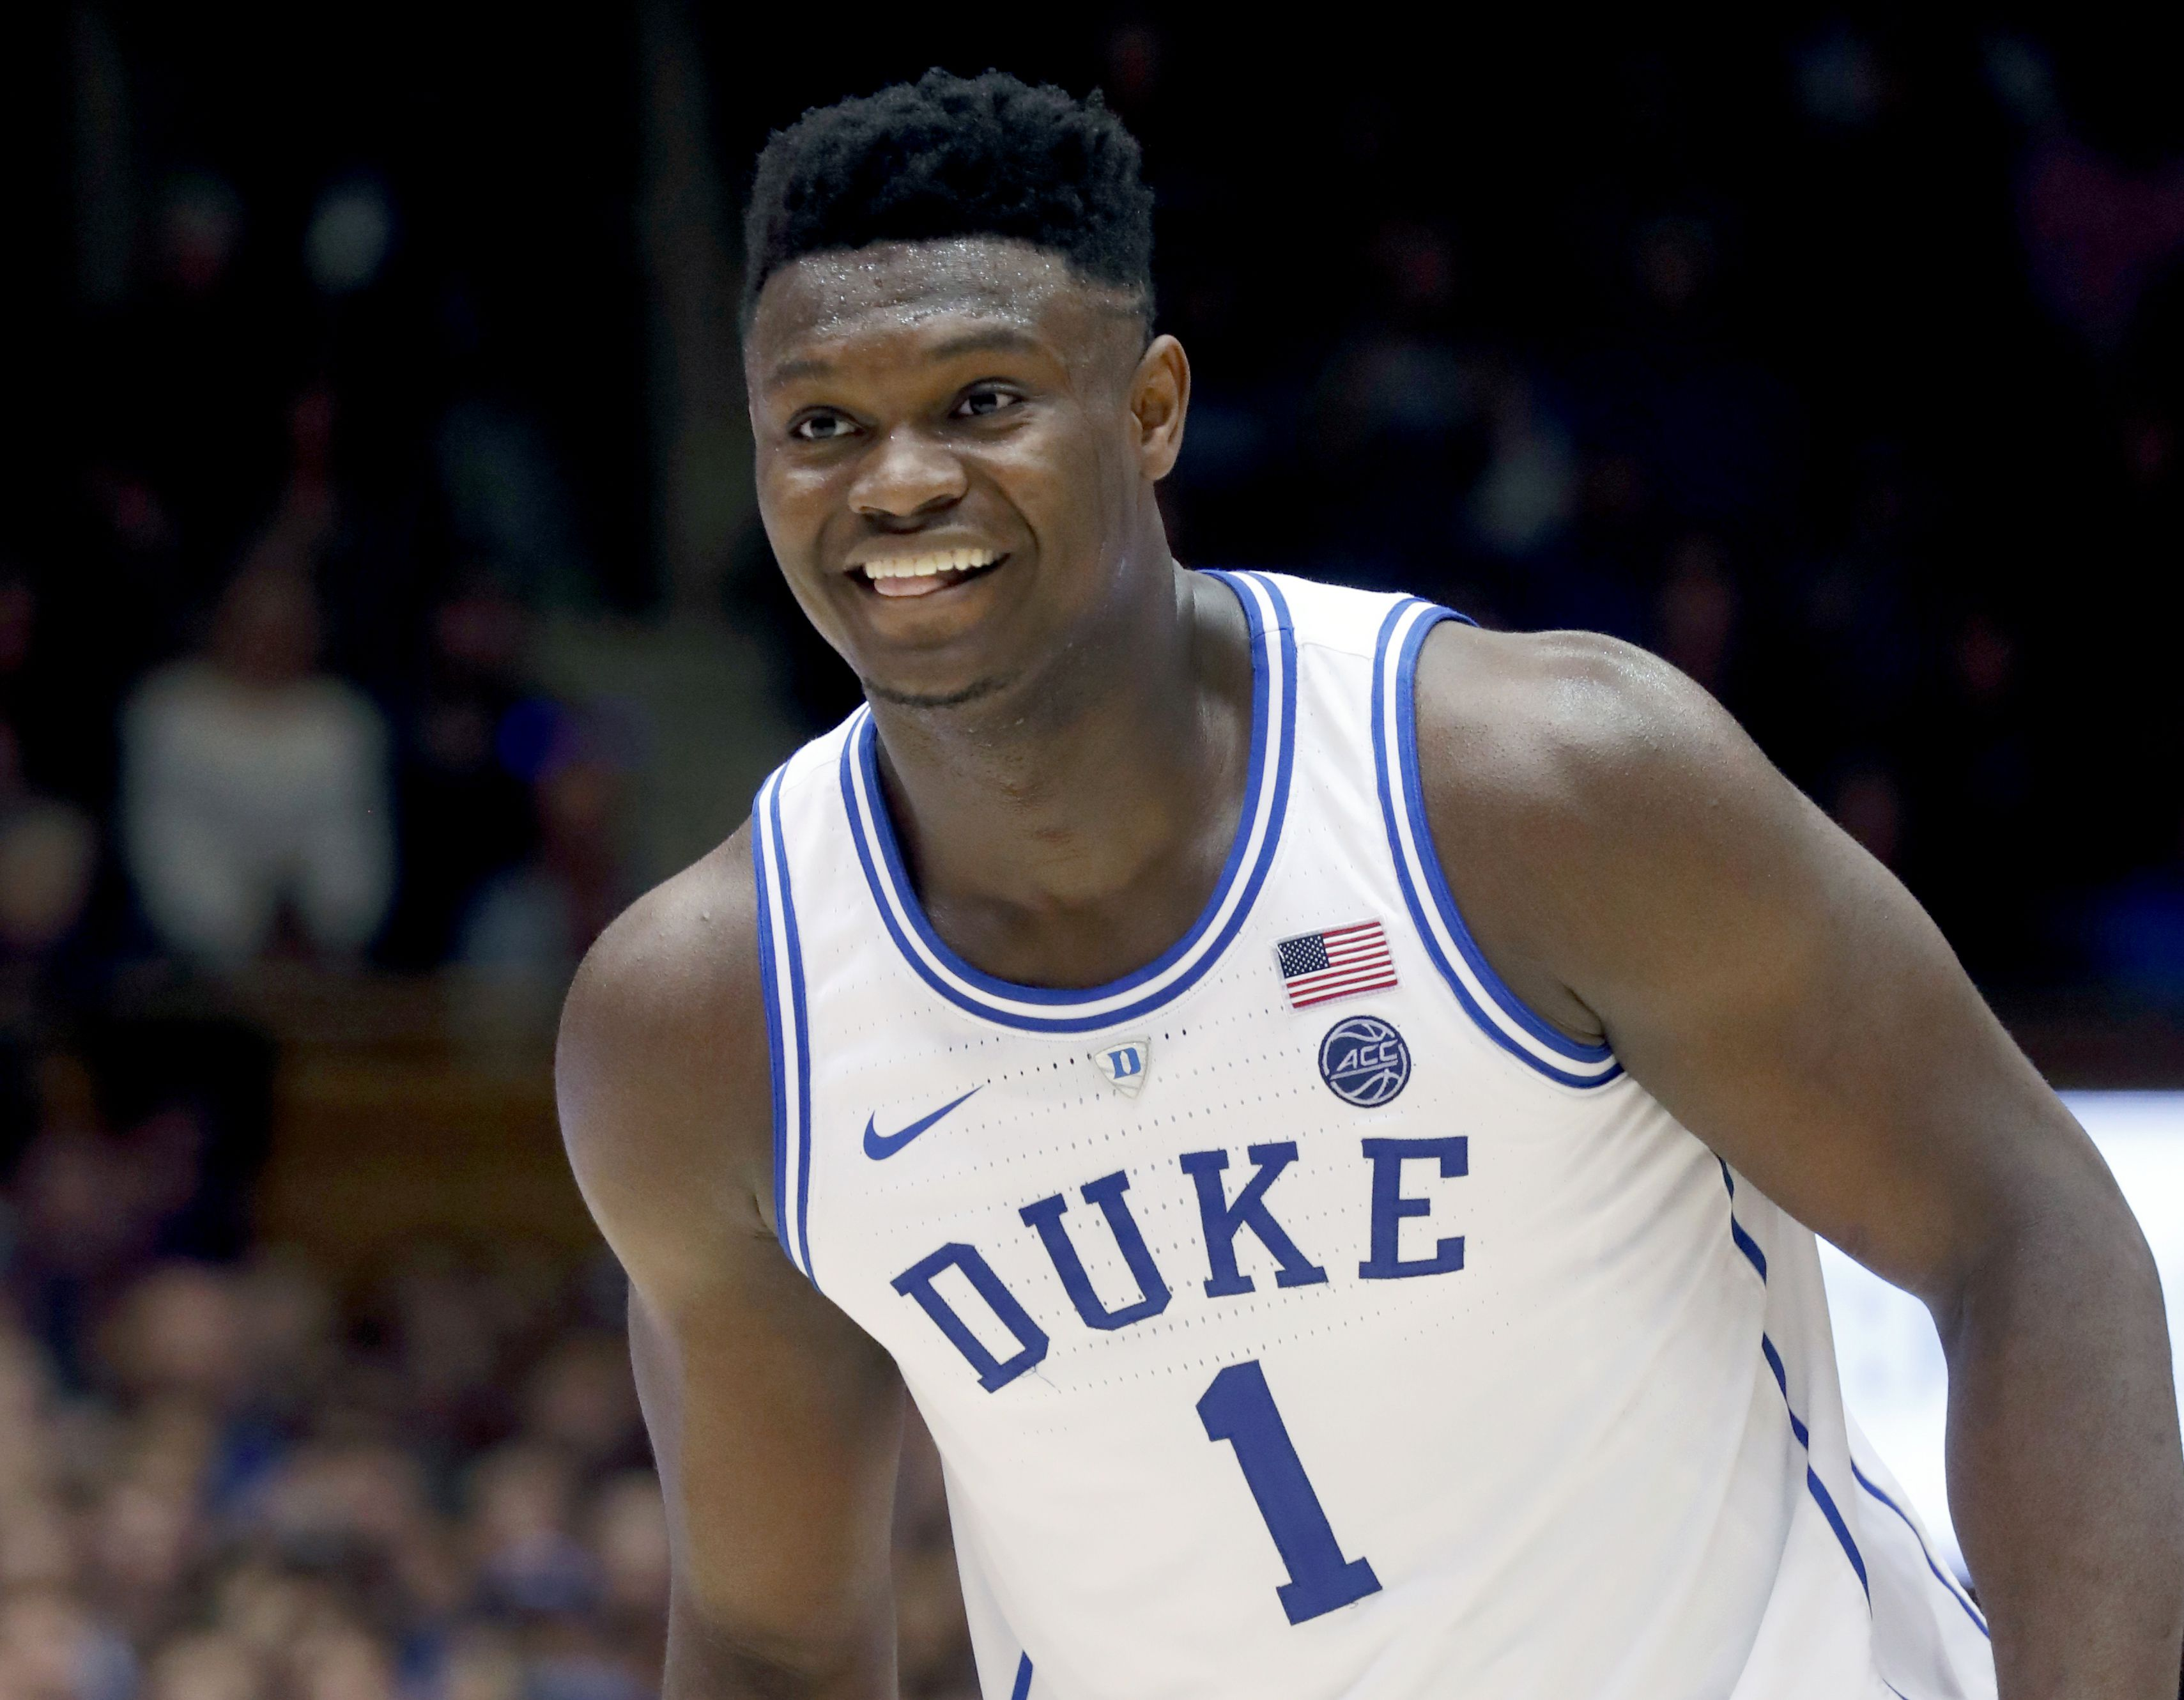 College Basketball 2019 Tv Schedule What Time Channel Is Duke Vs Virginia Tech 2 26 19 Will Zion Williamson Play Betting Line Odds Nj Com